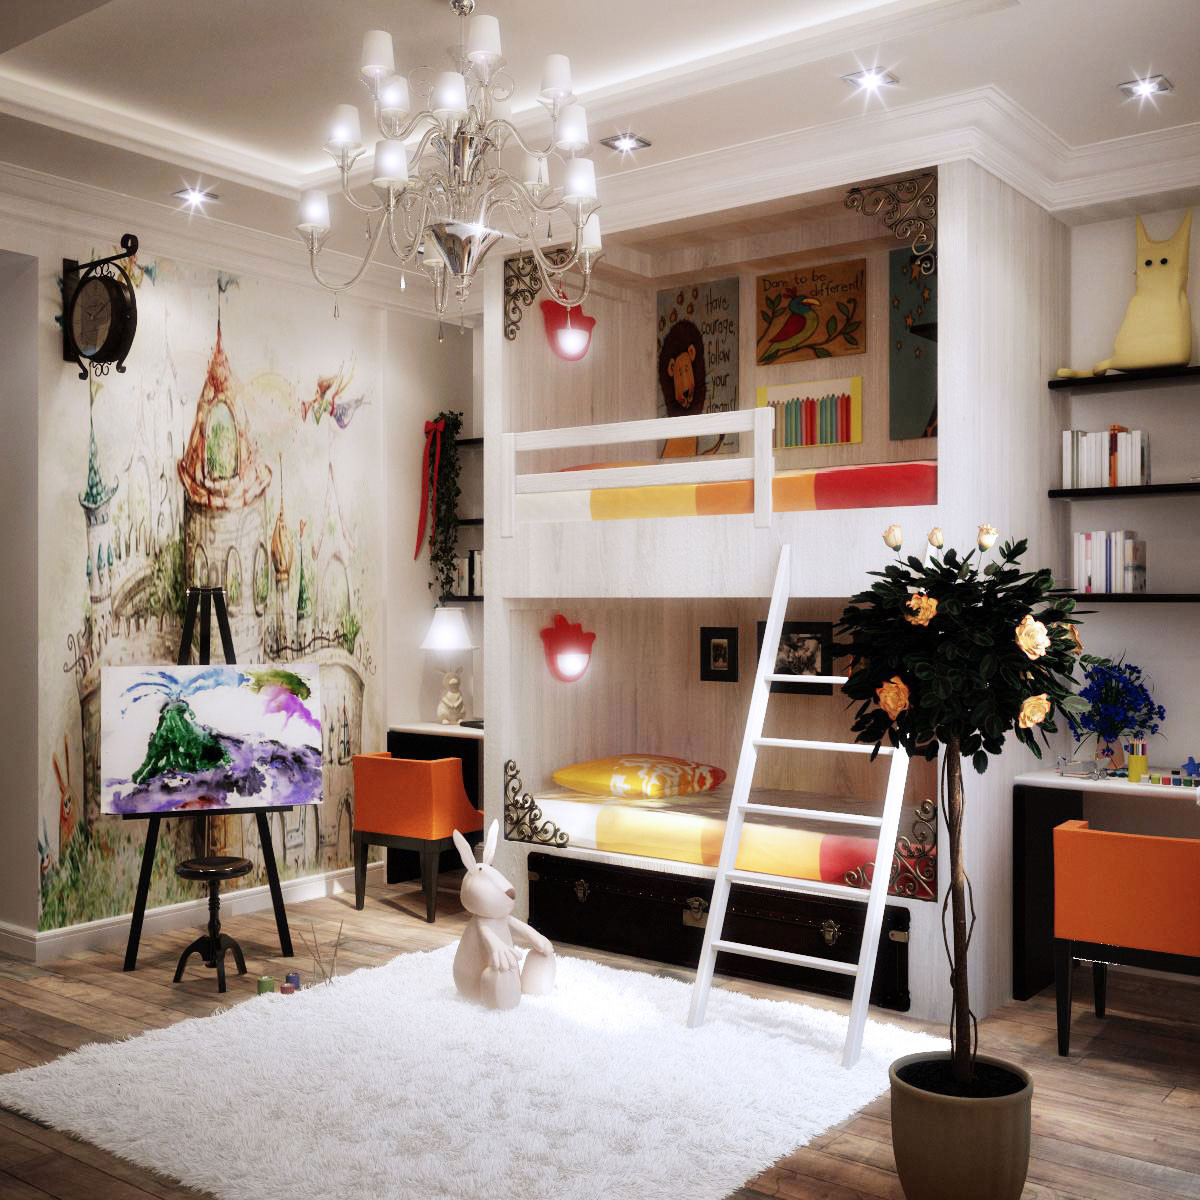 Best ideas about Kids Room Decor . Save or Pin Colorful Kids Rooms Now.